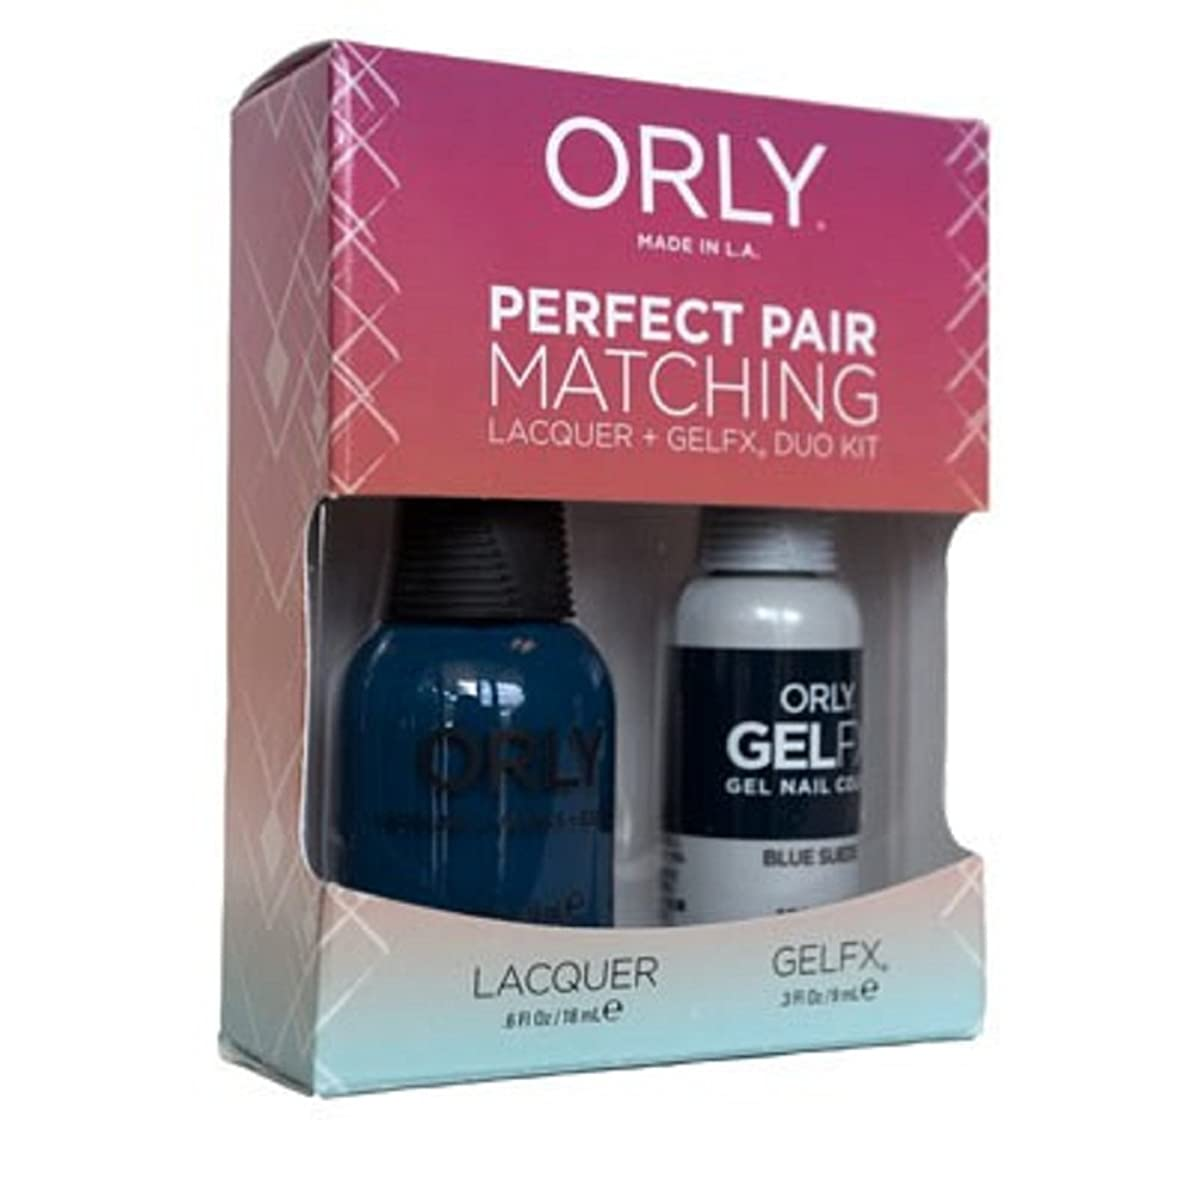 シリング上に築きます過度のOrly - Perfect Pair Matching Lacquer+Gel FX Kit - Blue Suede - 0.6 oz/0.3 oz